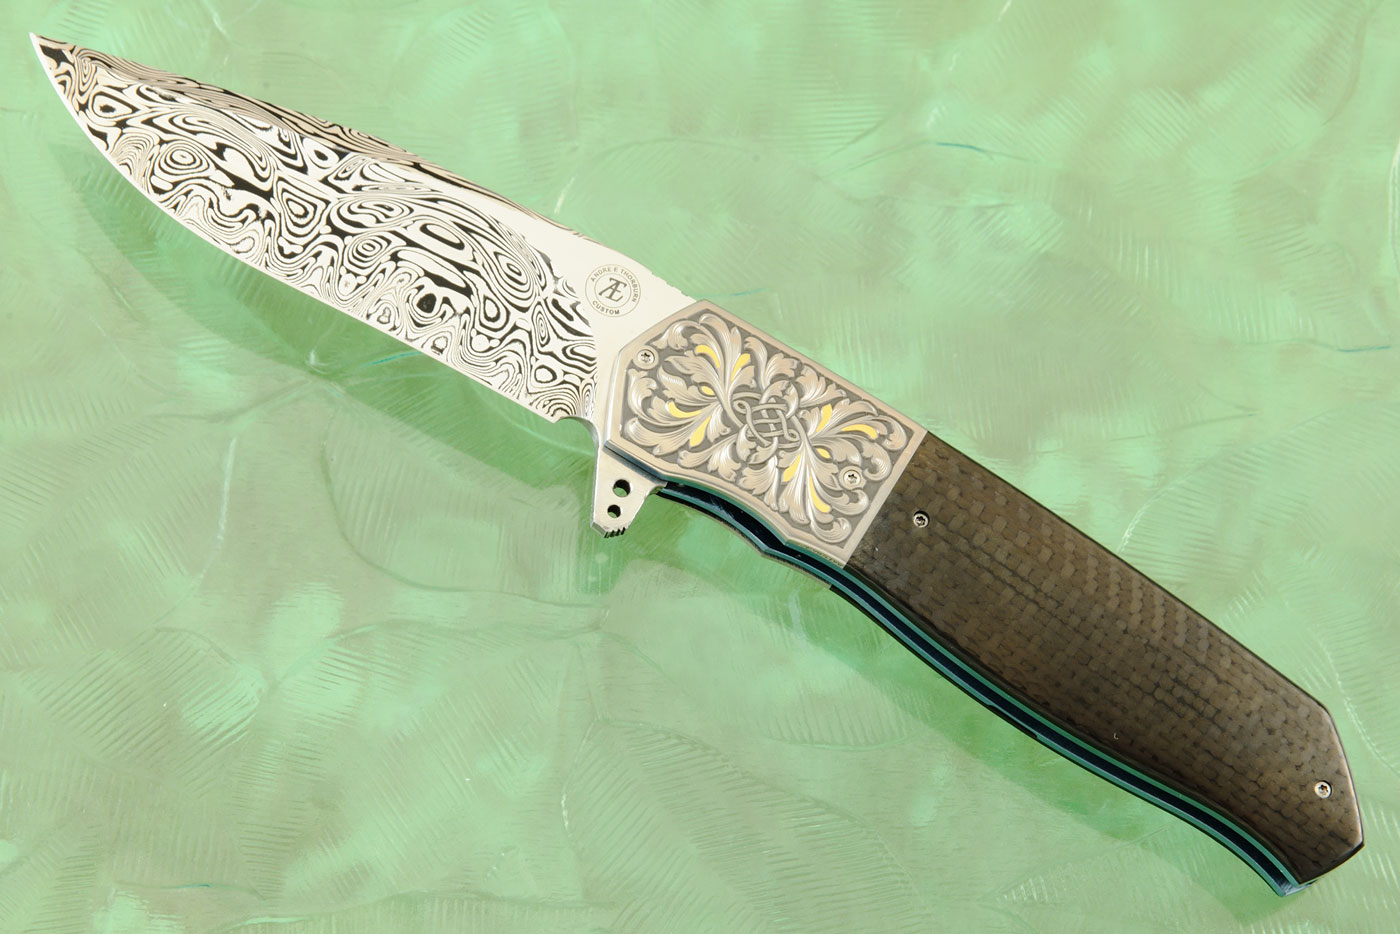 L36M Flipper with Carbon Fiber, Damascus, and Engraved Titanium with Gold Inlay (Ceramic IKBS)